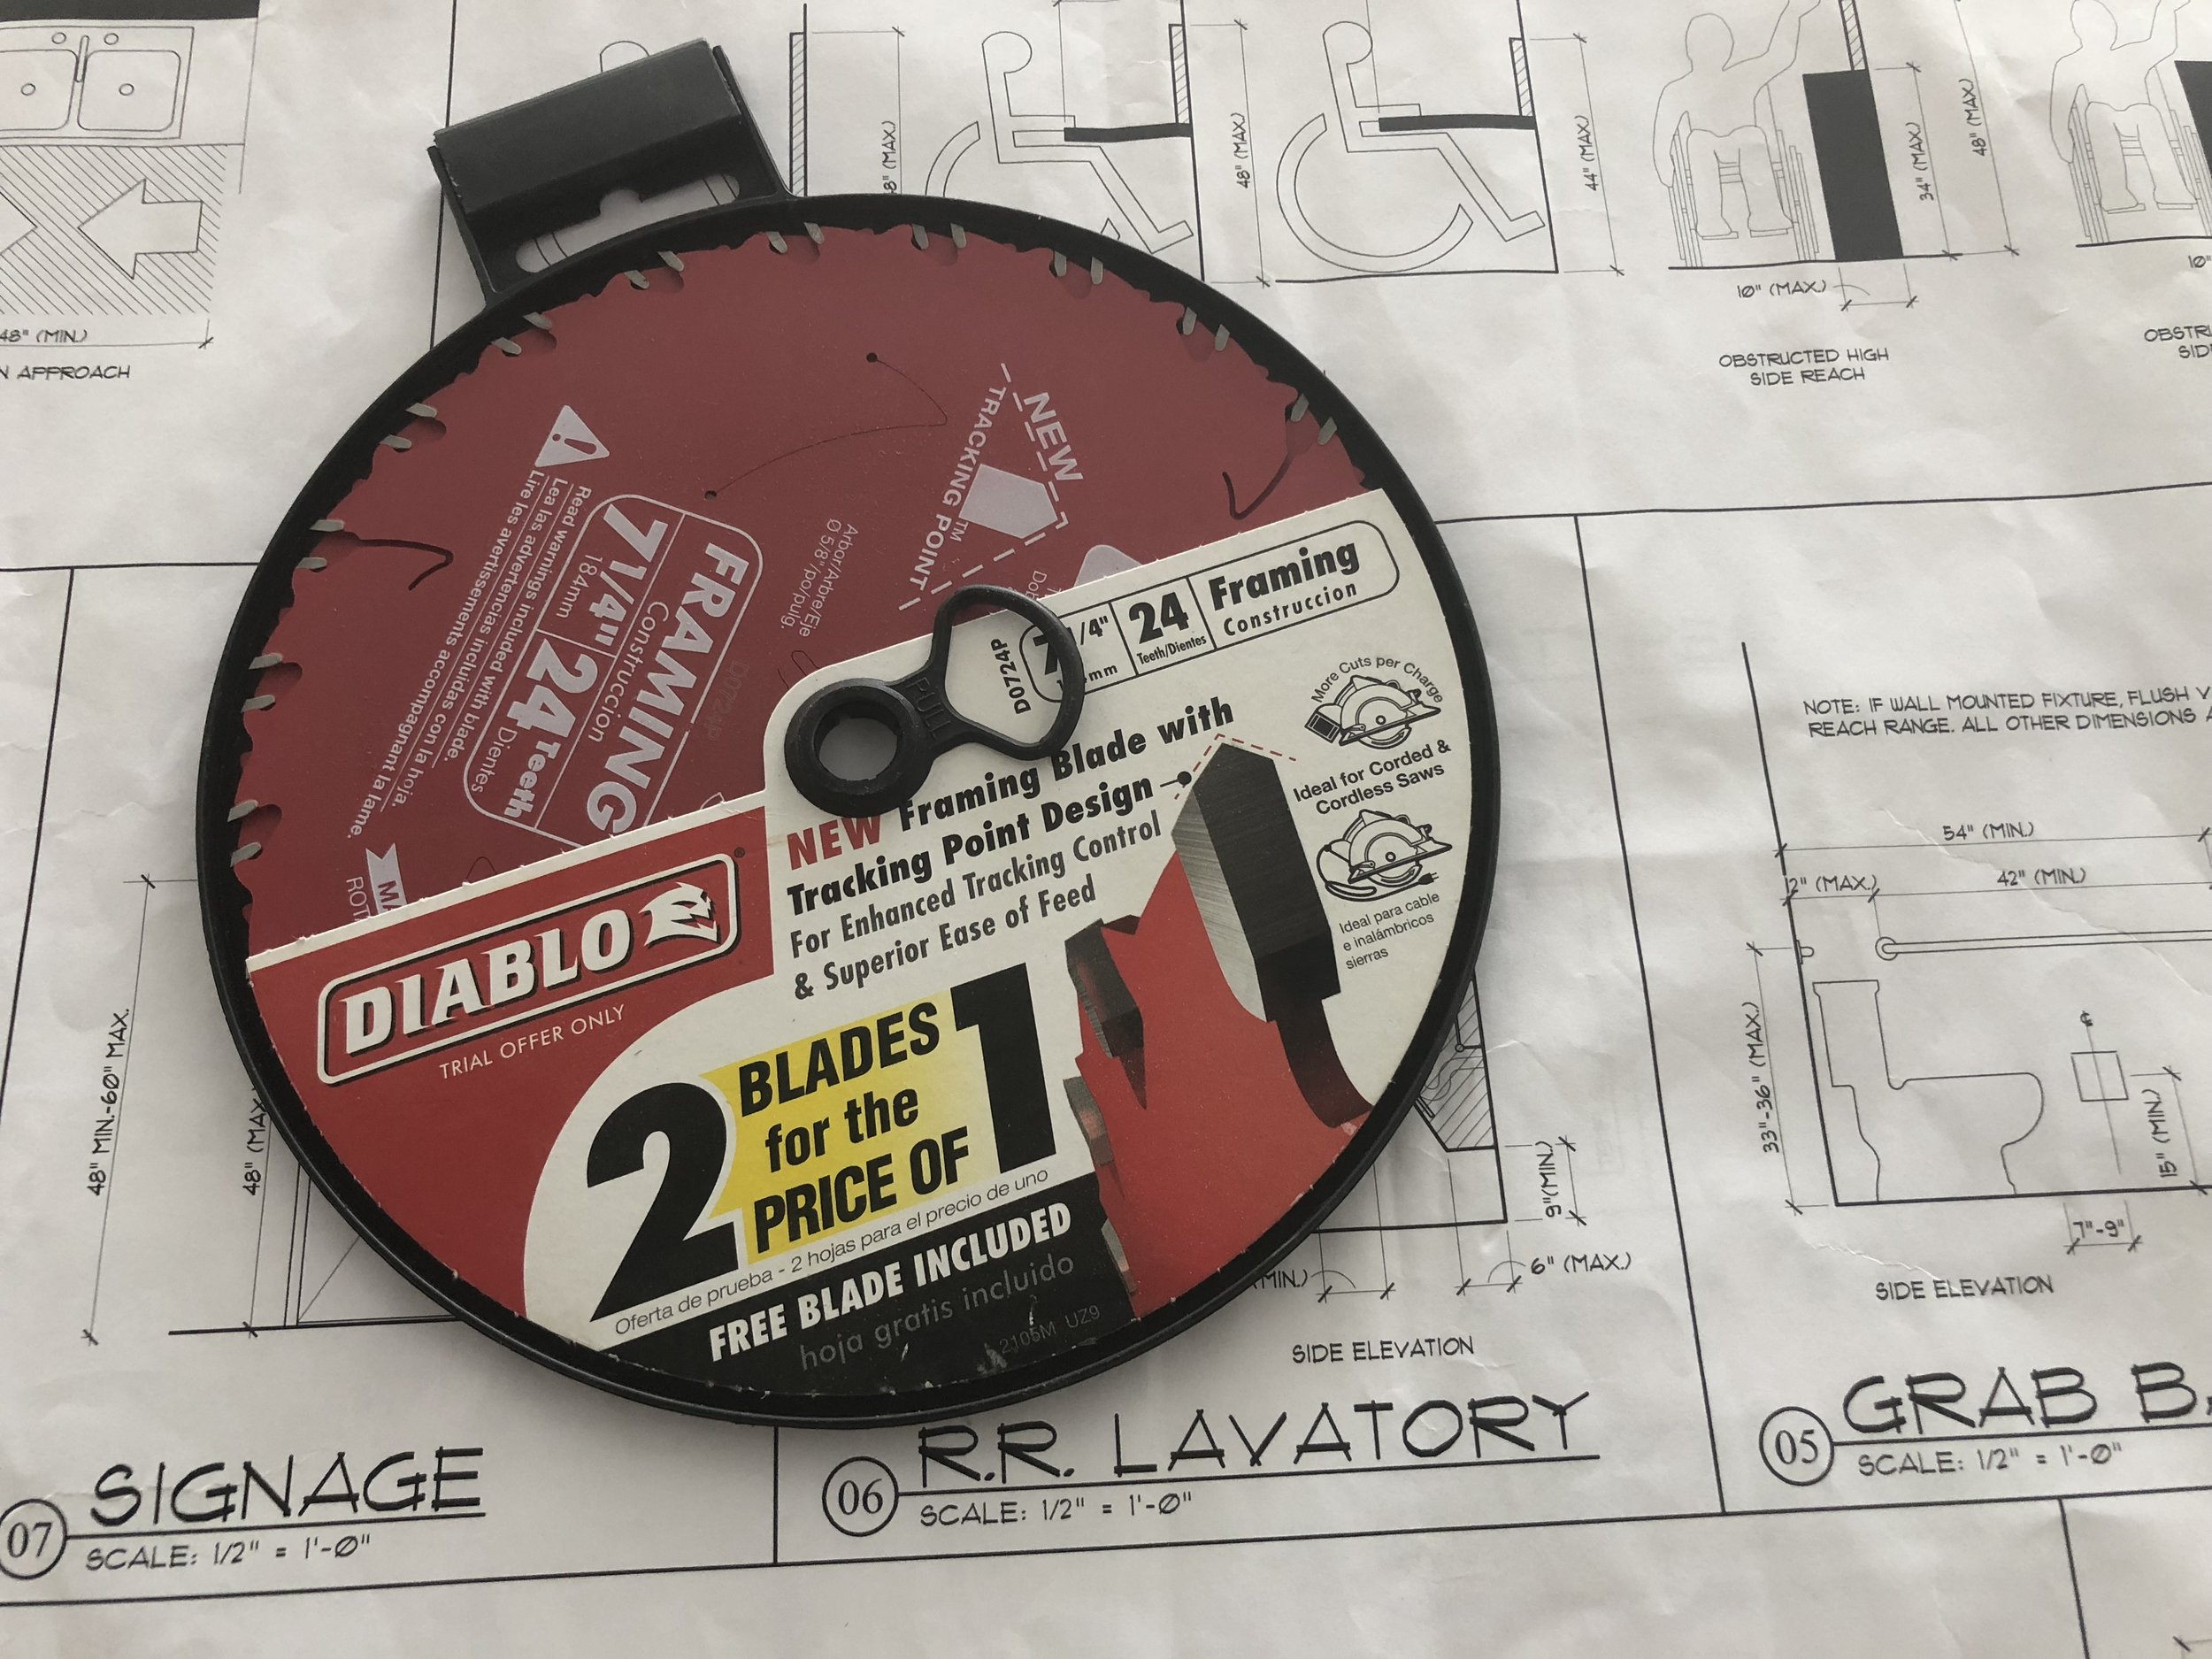 diablo-7.25in-framing-saw-blade-with-tracking-point-design